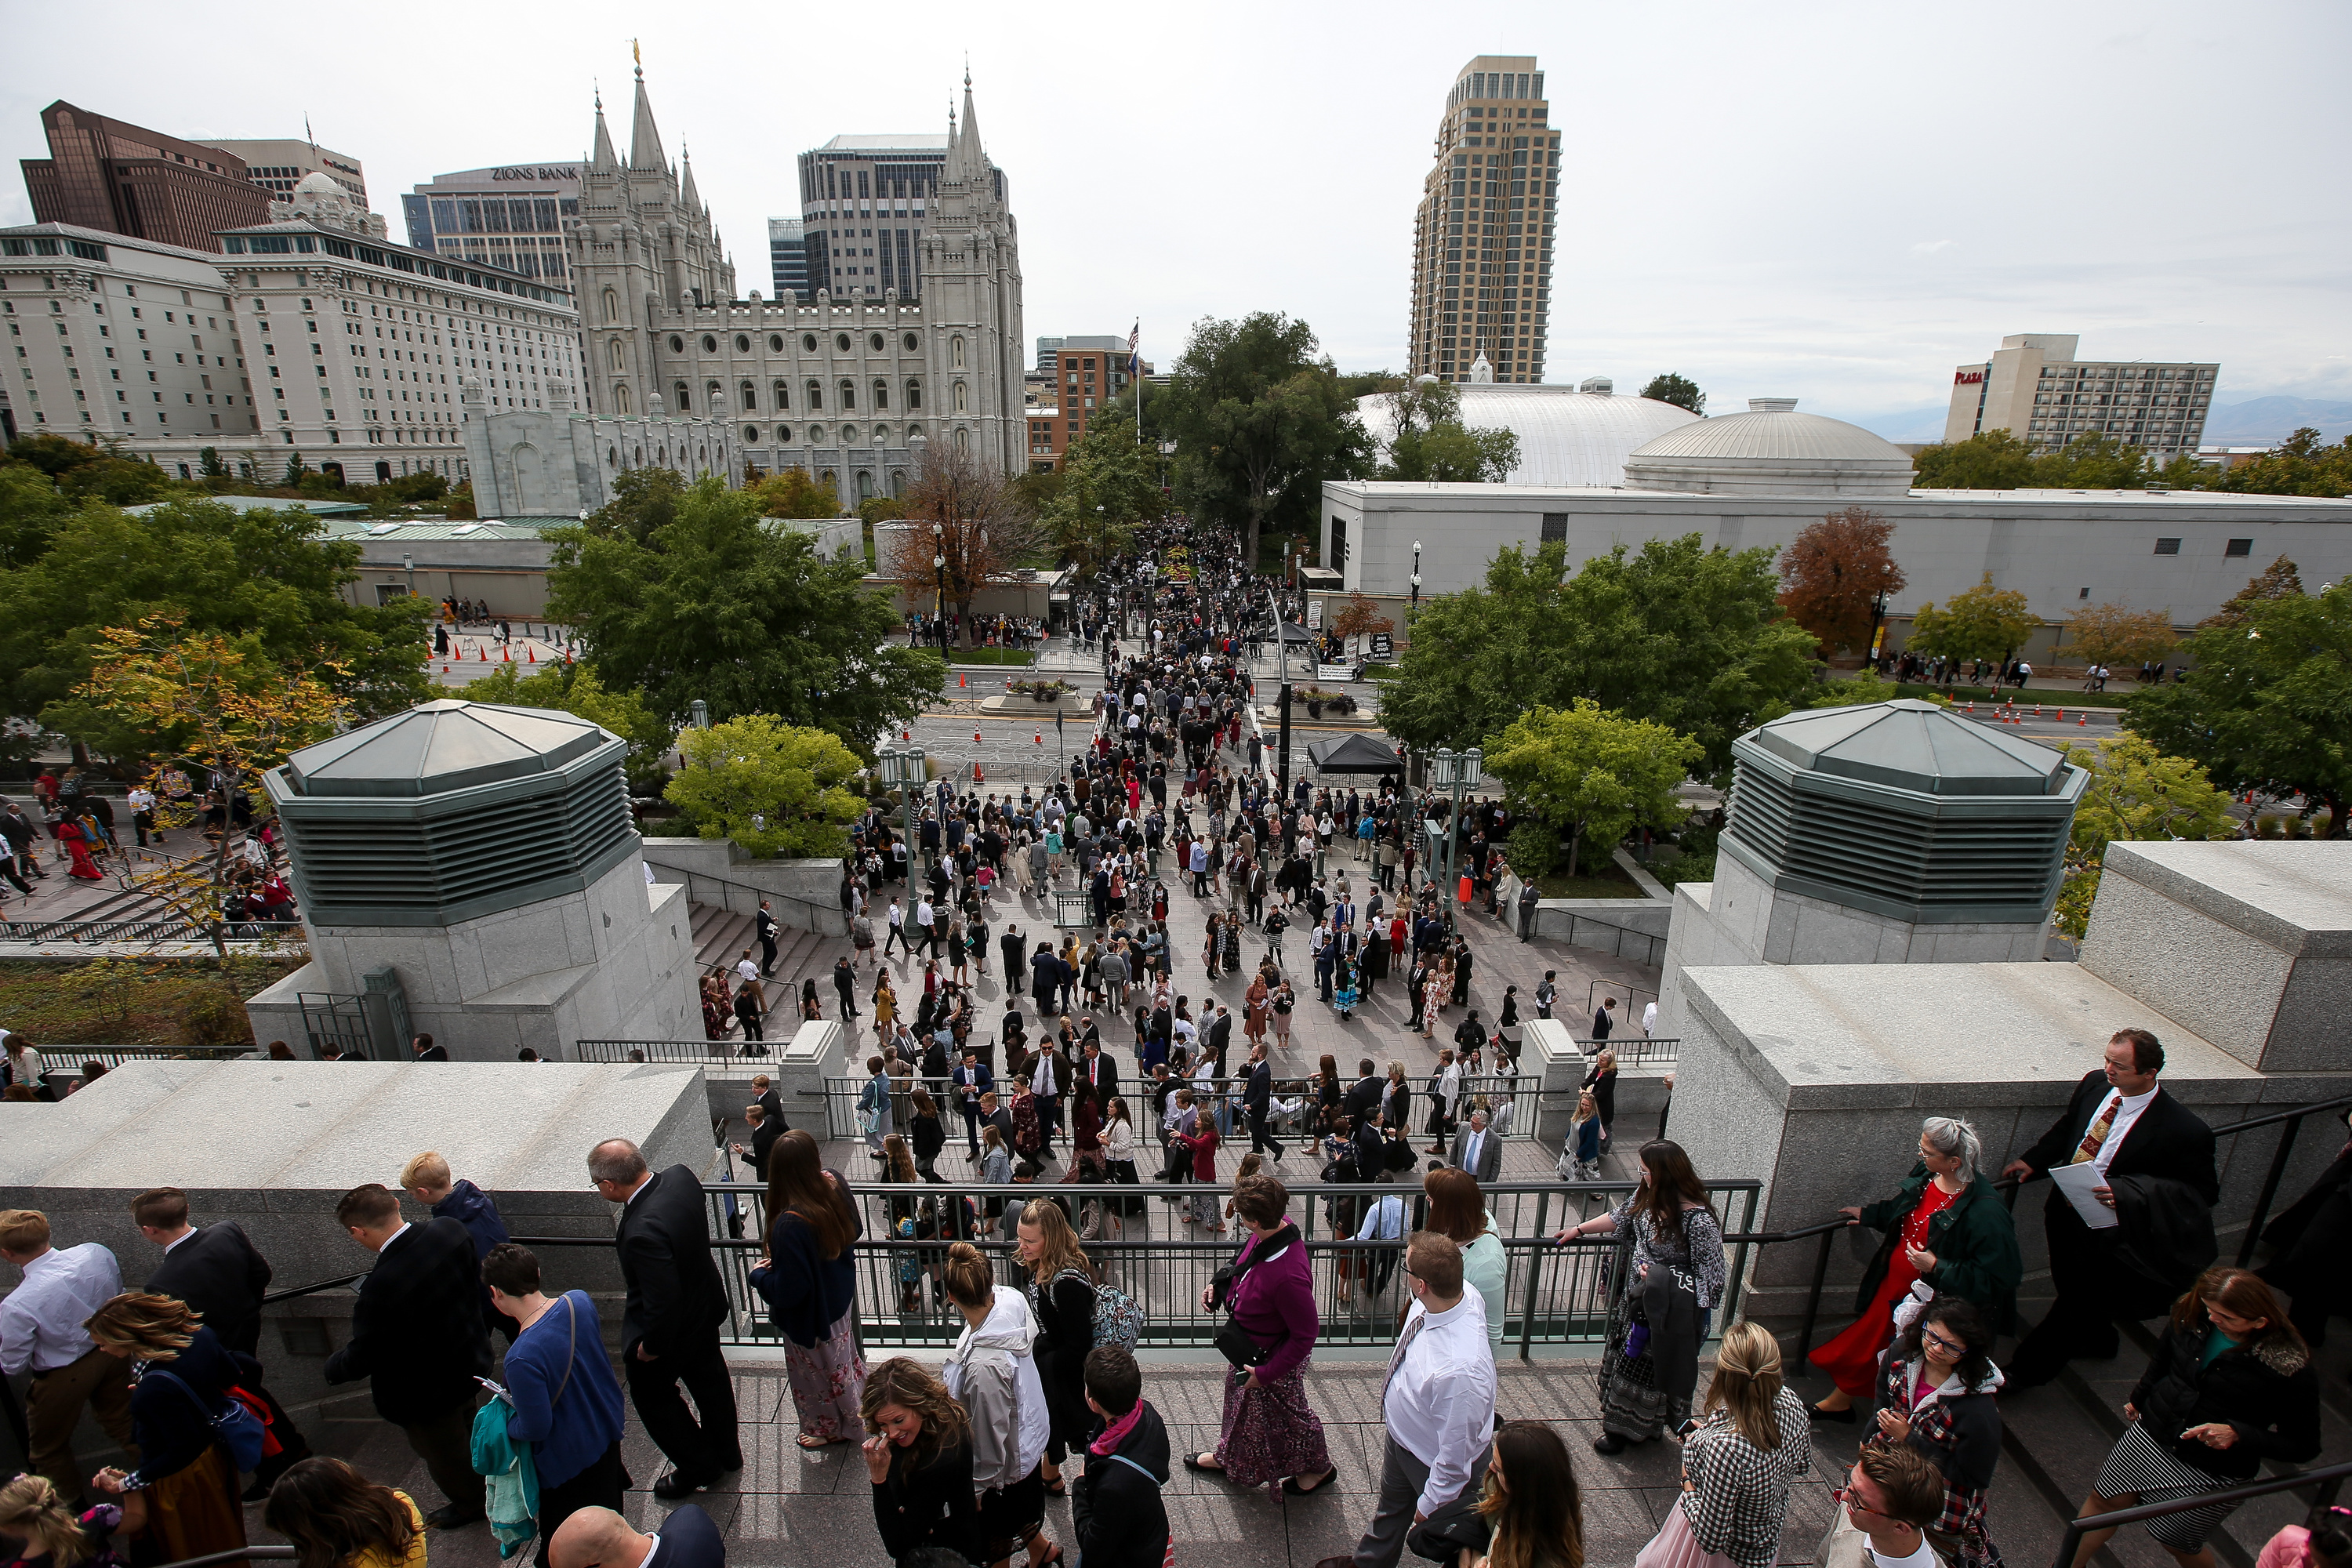 Conferencegoers depart after the Saturday morning session of the 188th Semiannual General Conference of The Church of Jesus Christ of Latter-day Saints in the Conference Center in Salt Lake City on Saturday, Oct. 6, 2018.